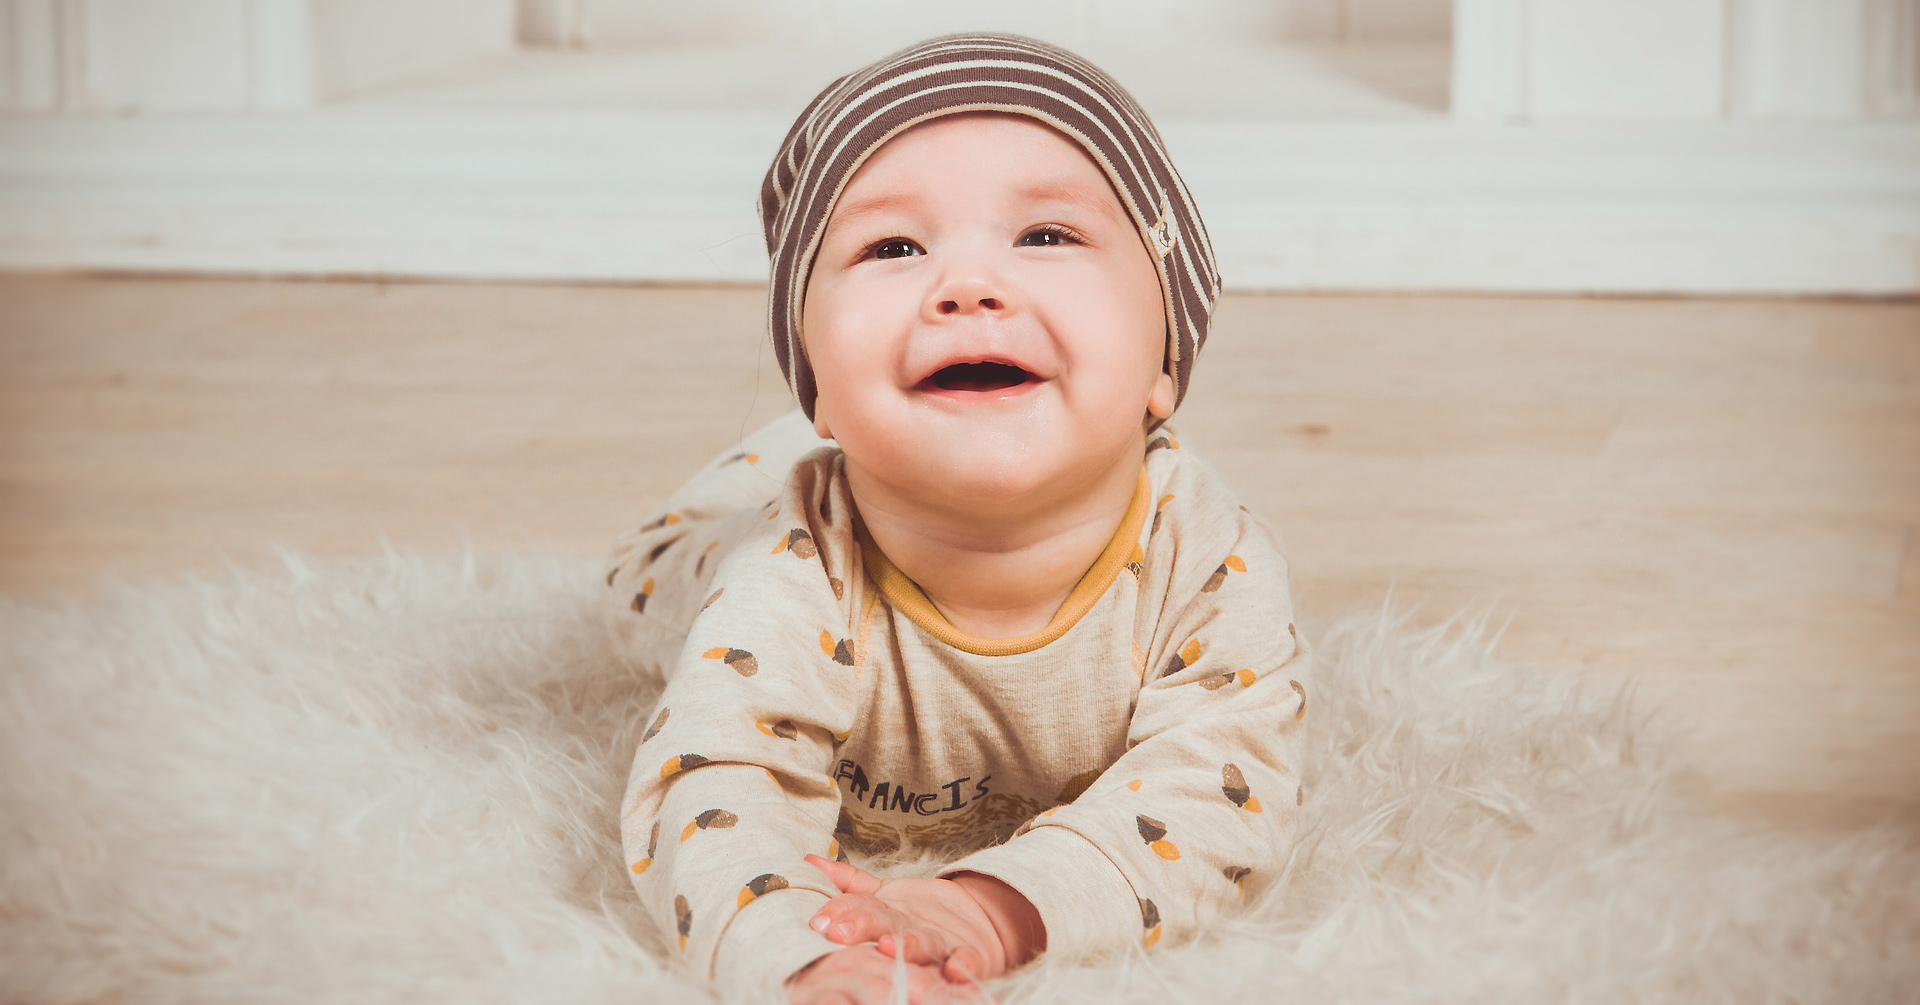 15 cute tongue-in-cheek personalized baby clothes